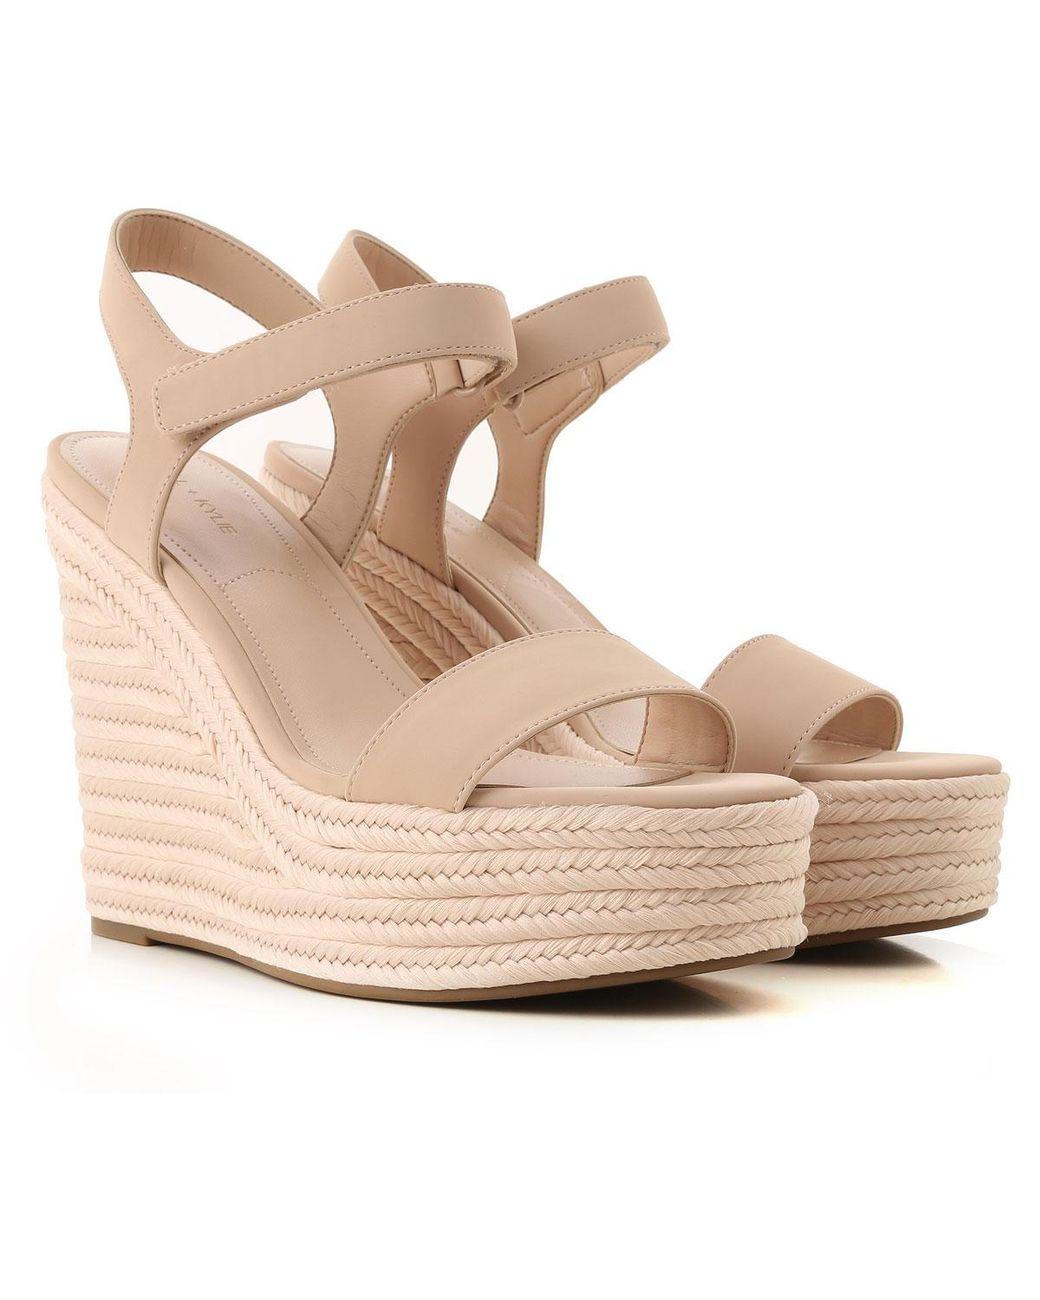 5b42c2a4a3 Lyst - Kendall + Kylie Wedges For Women in Pink